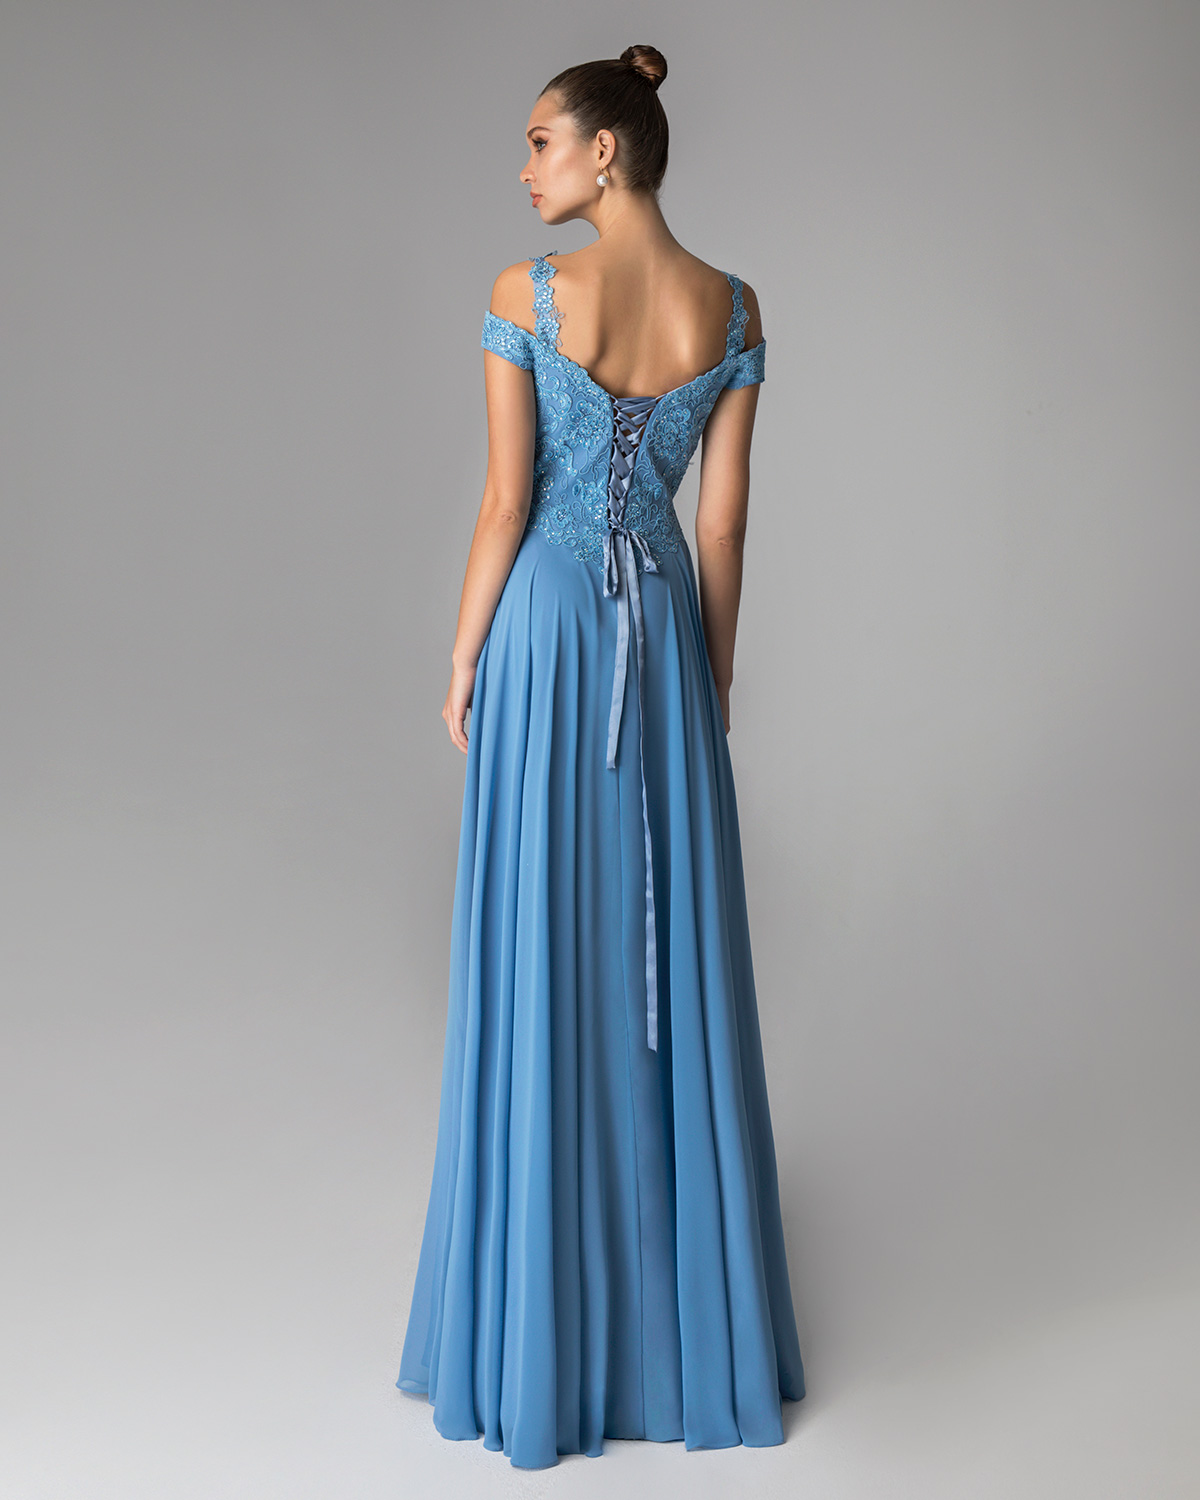 Classic Dresses / Long evening dress with applique lace and beaded top